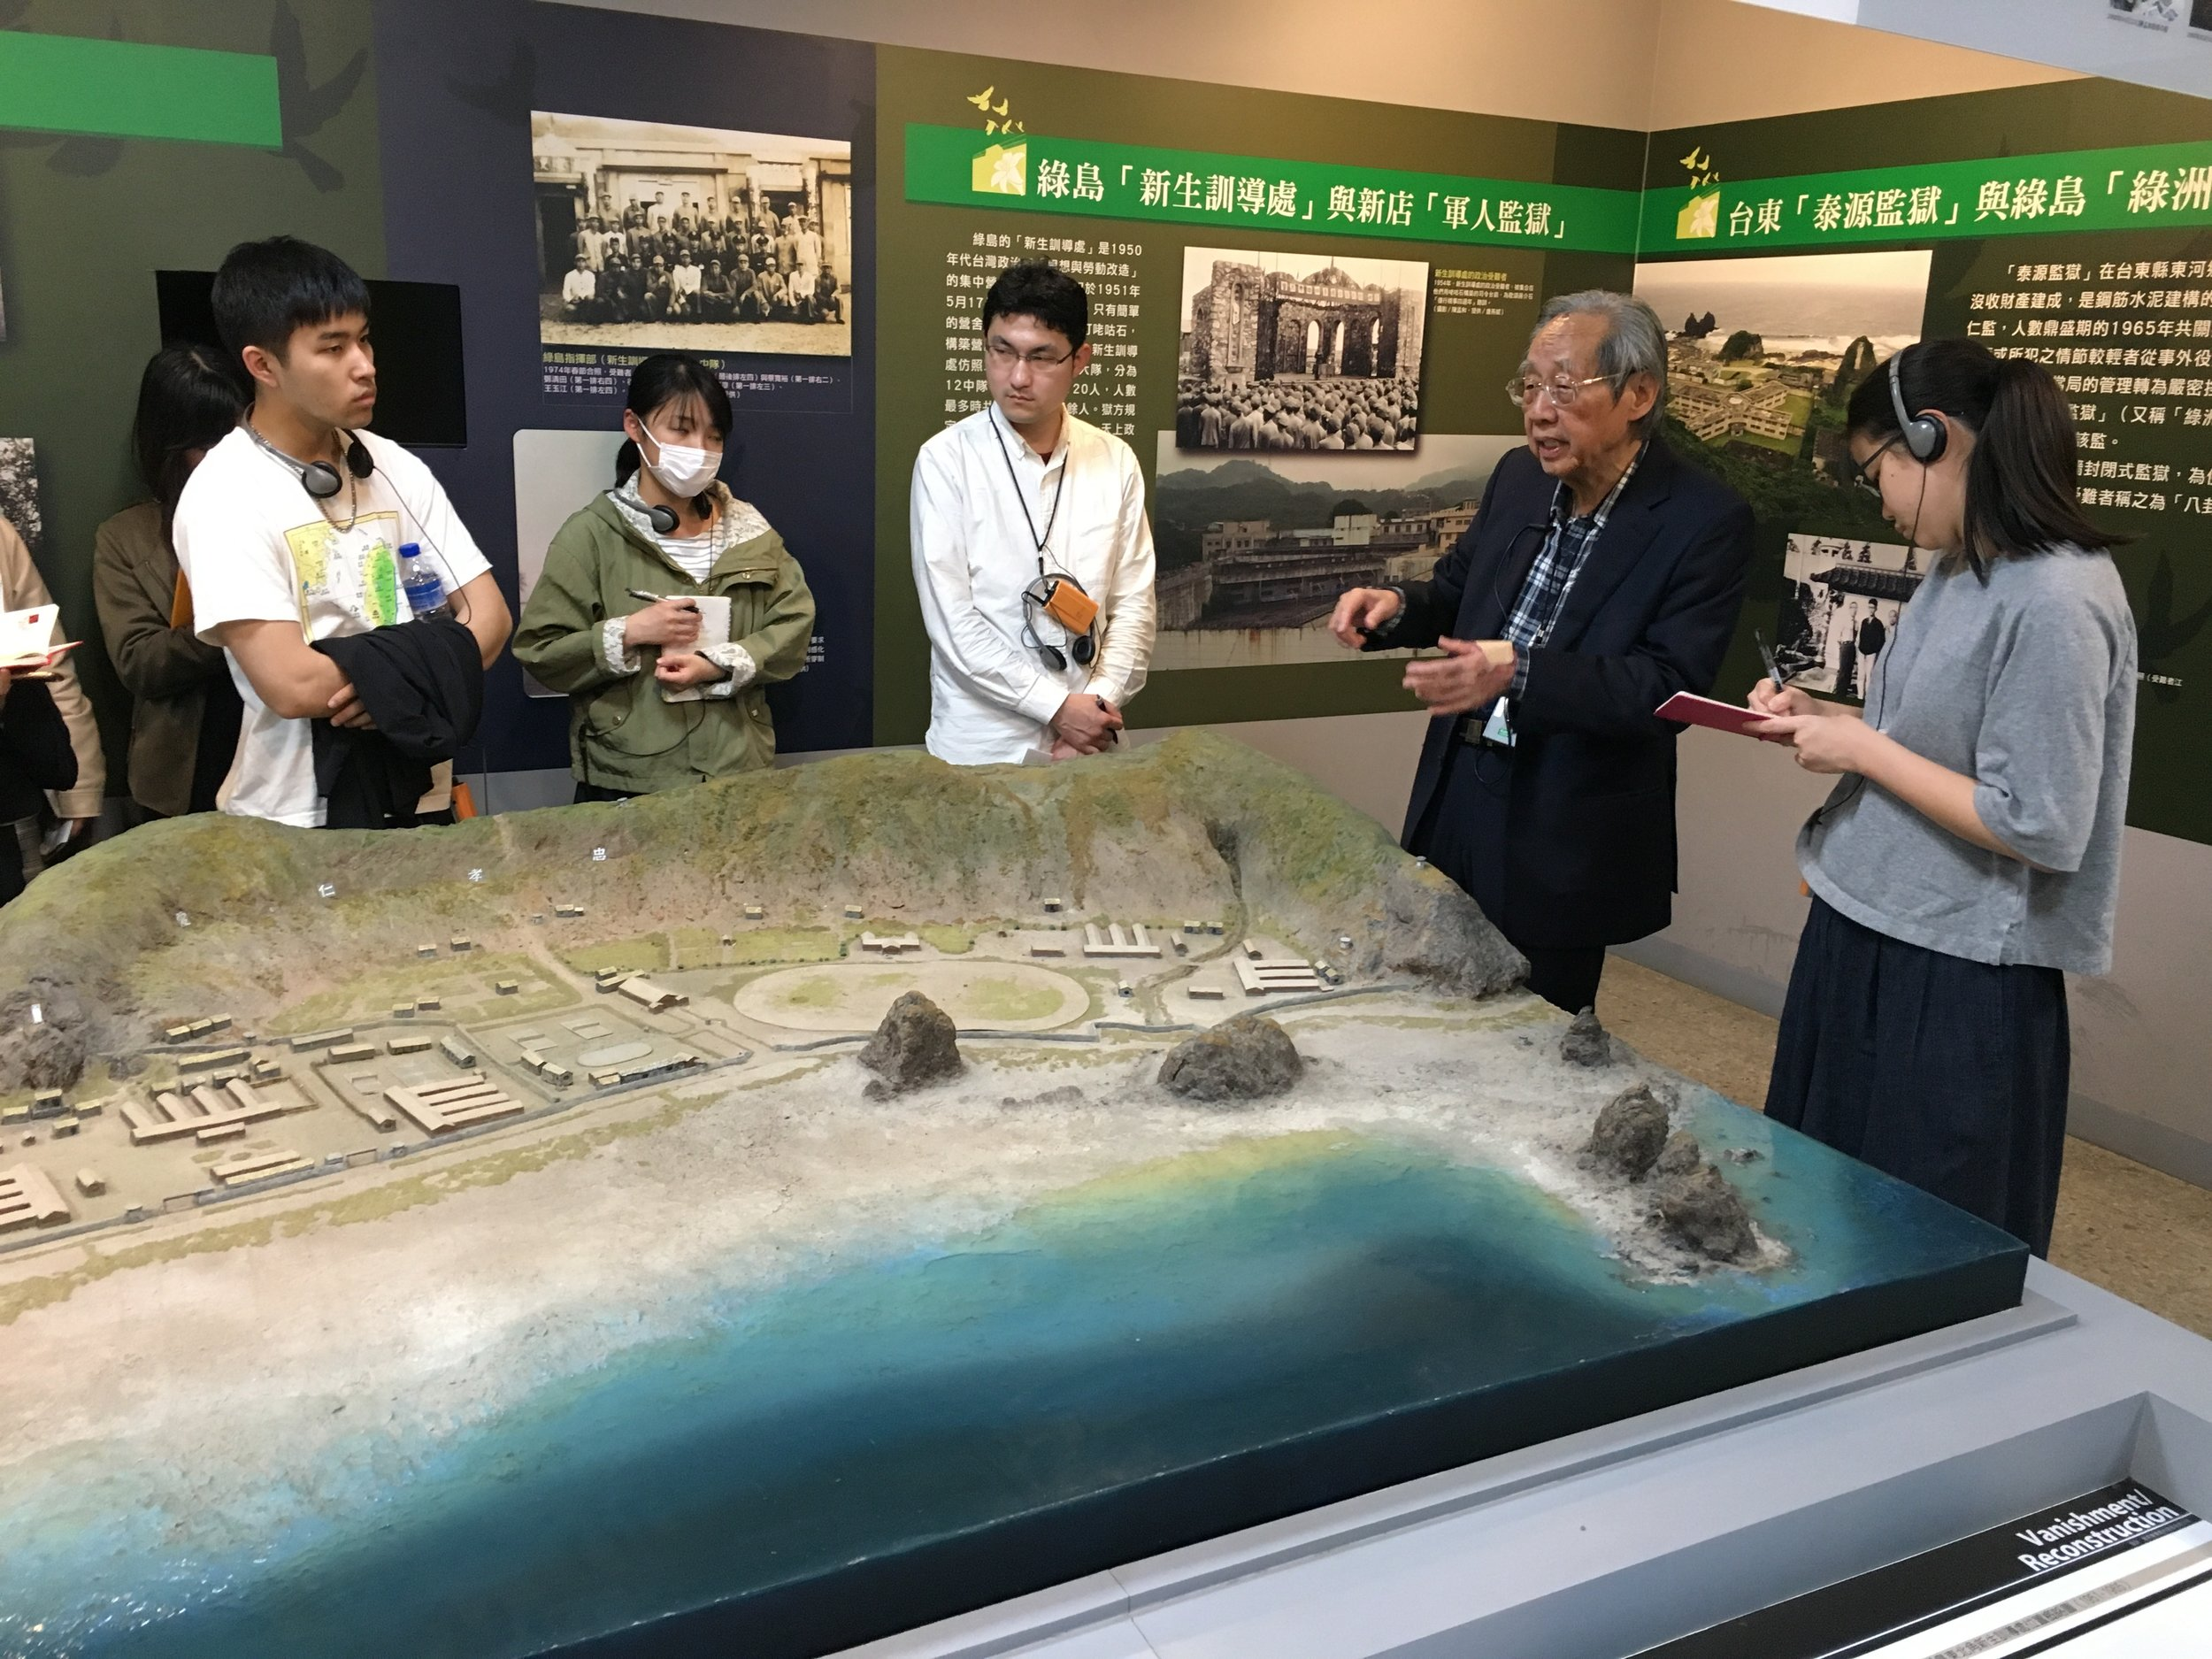 Mr. Tsai guides students around the Jingmei Human Rights Museum